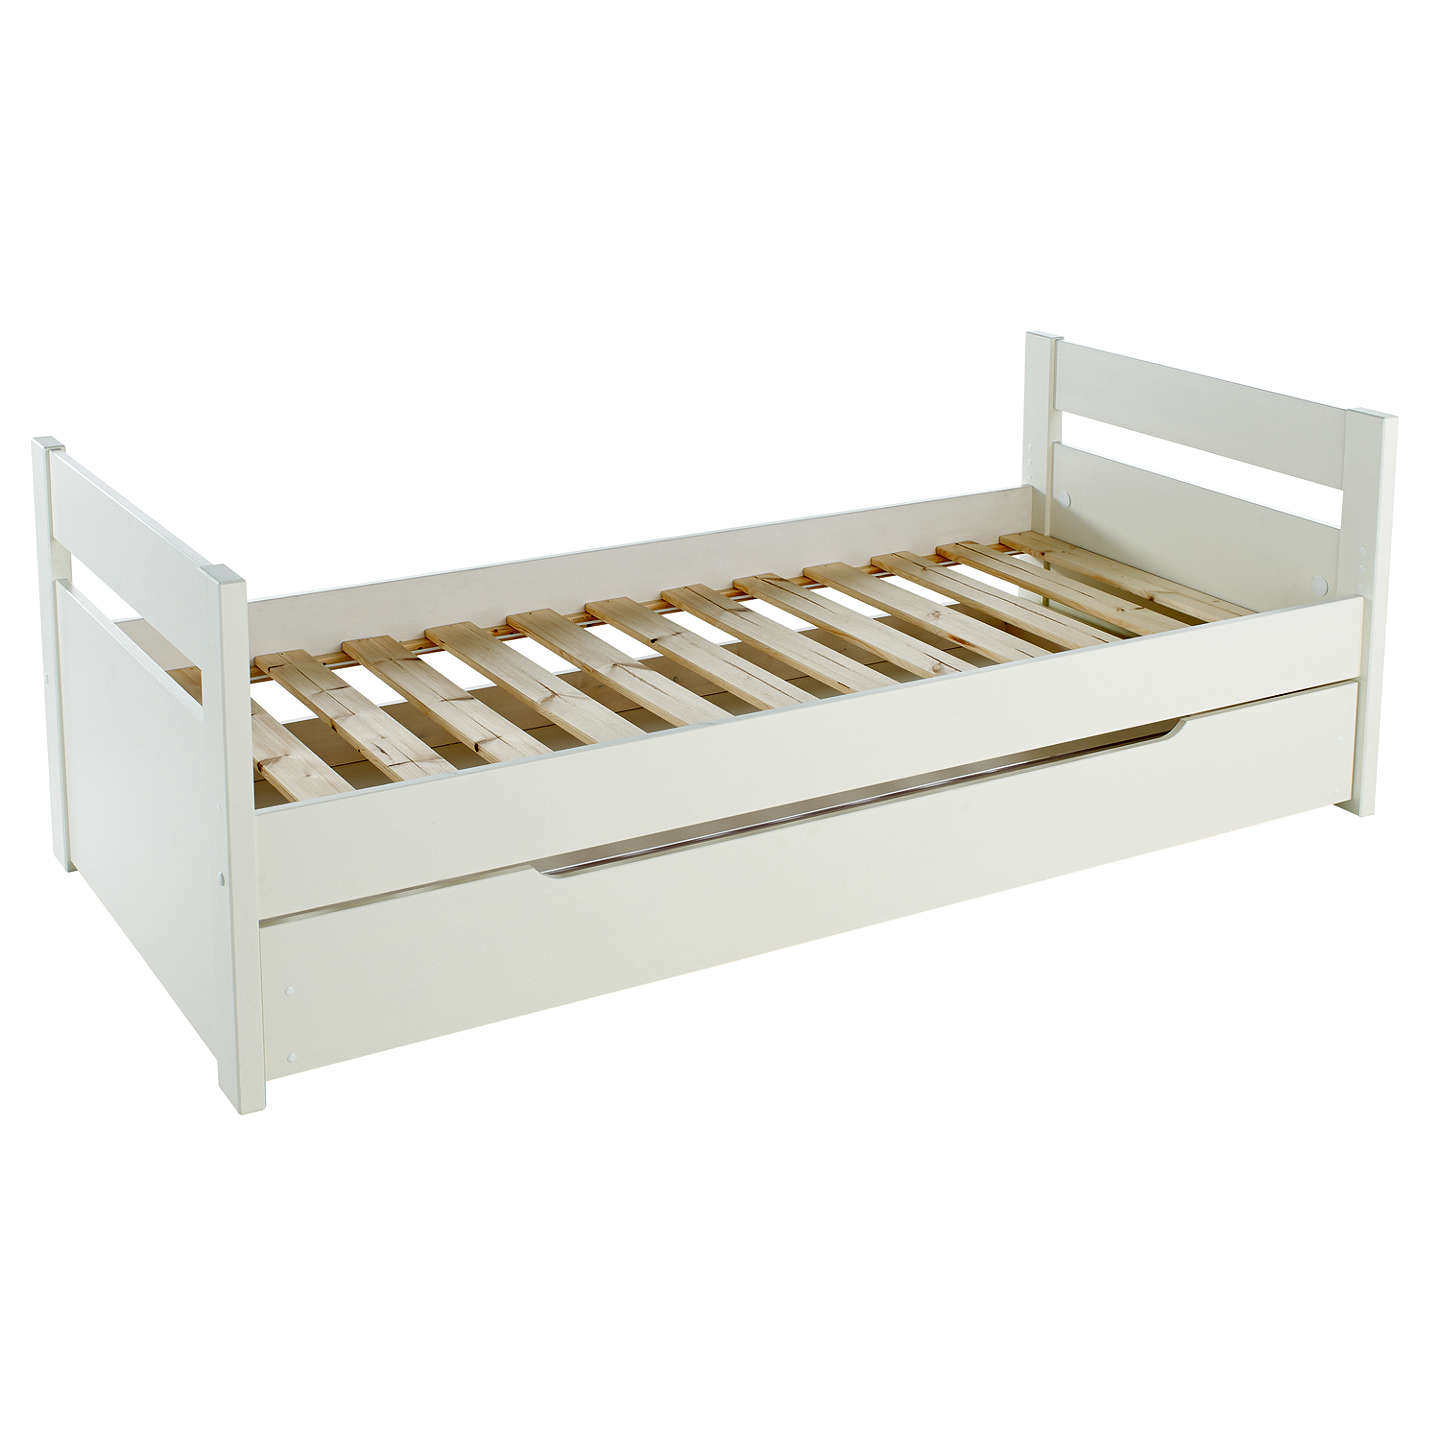 with guest main image woodstock frame wooden bed dreams